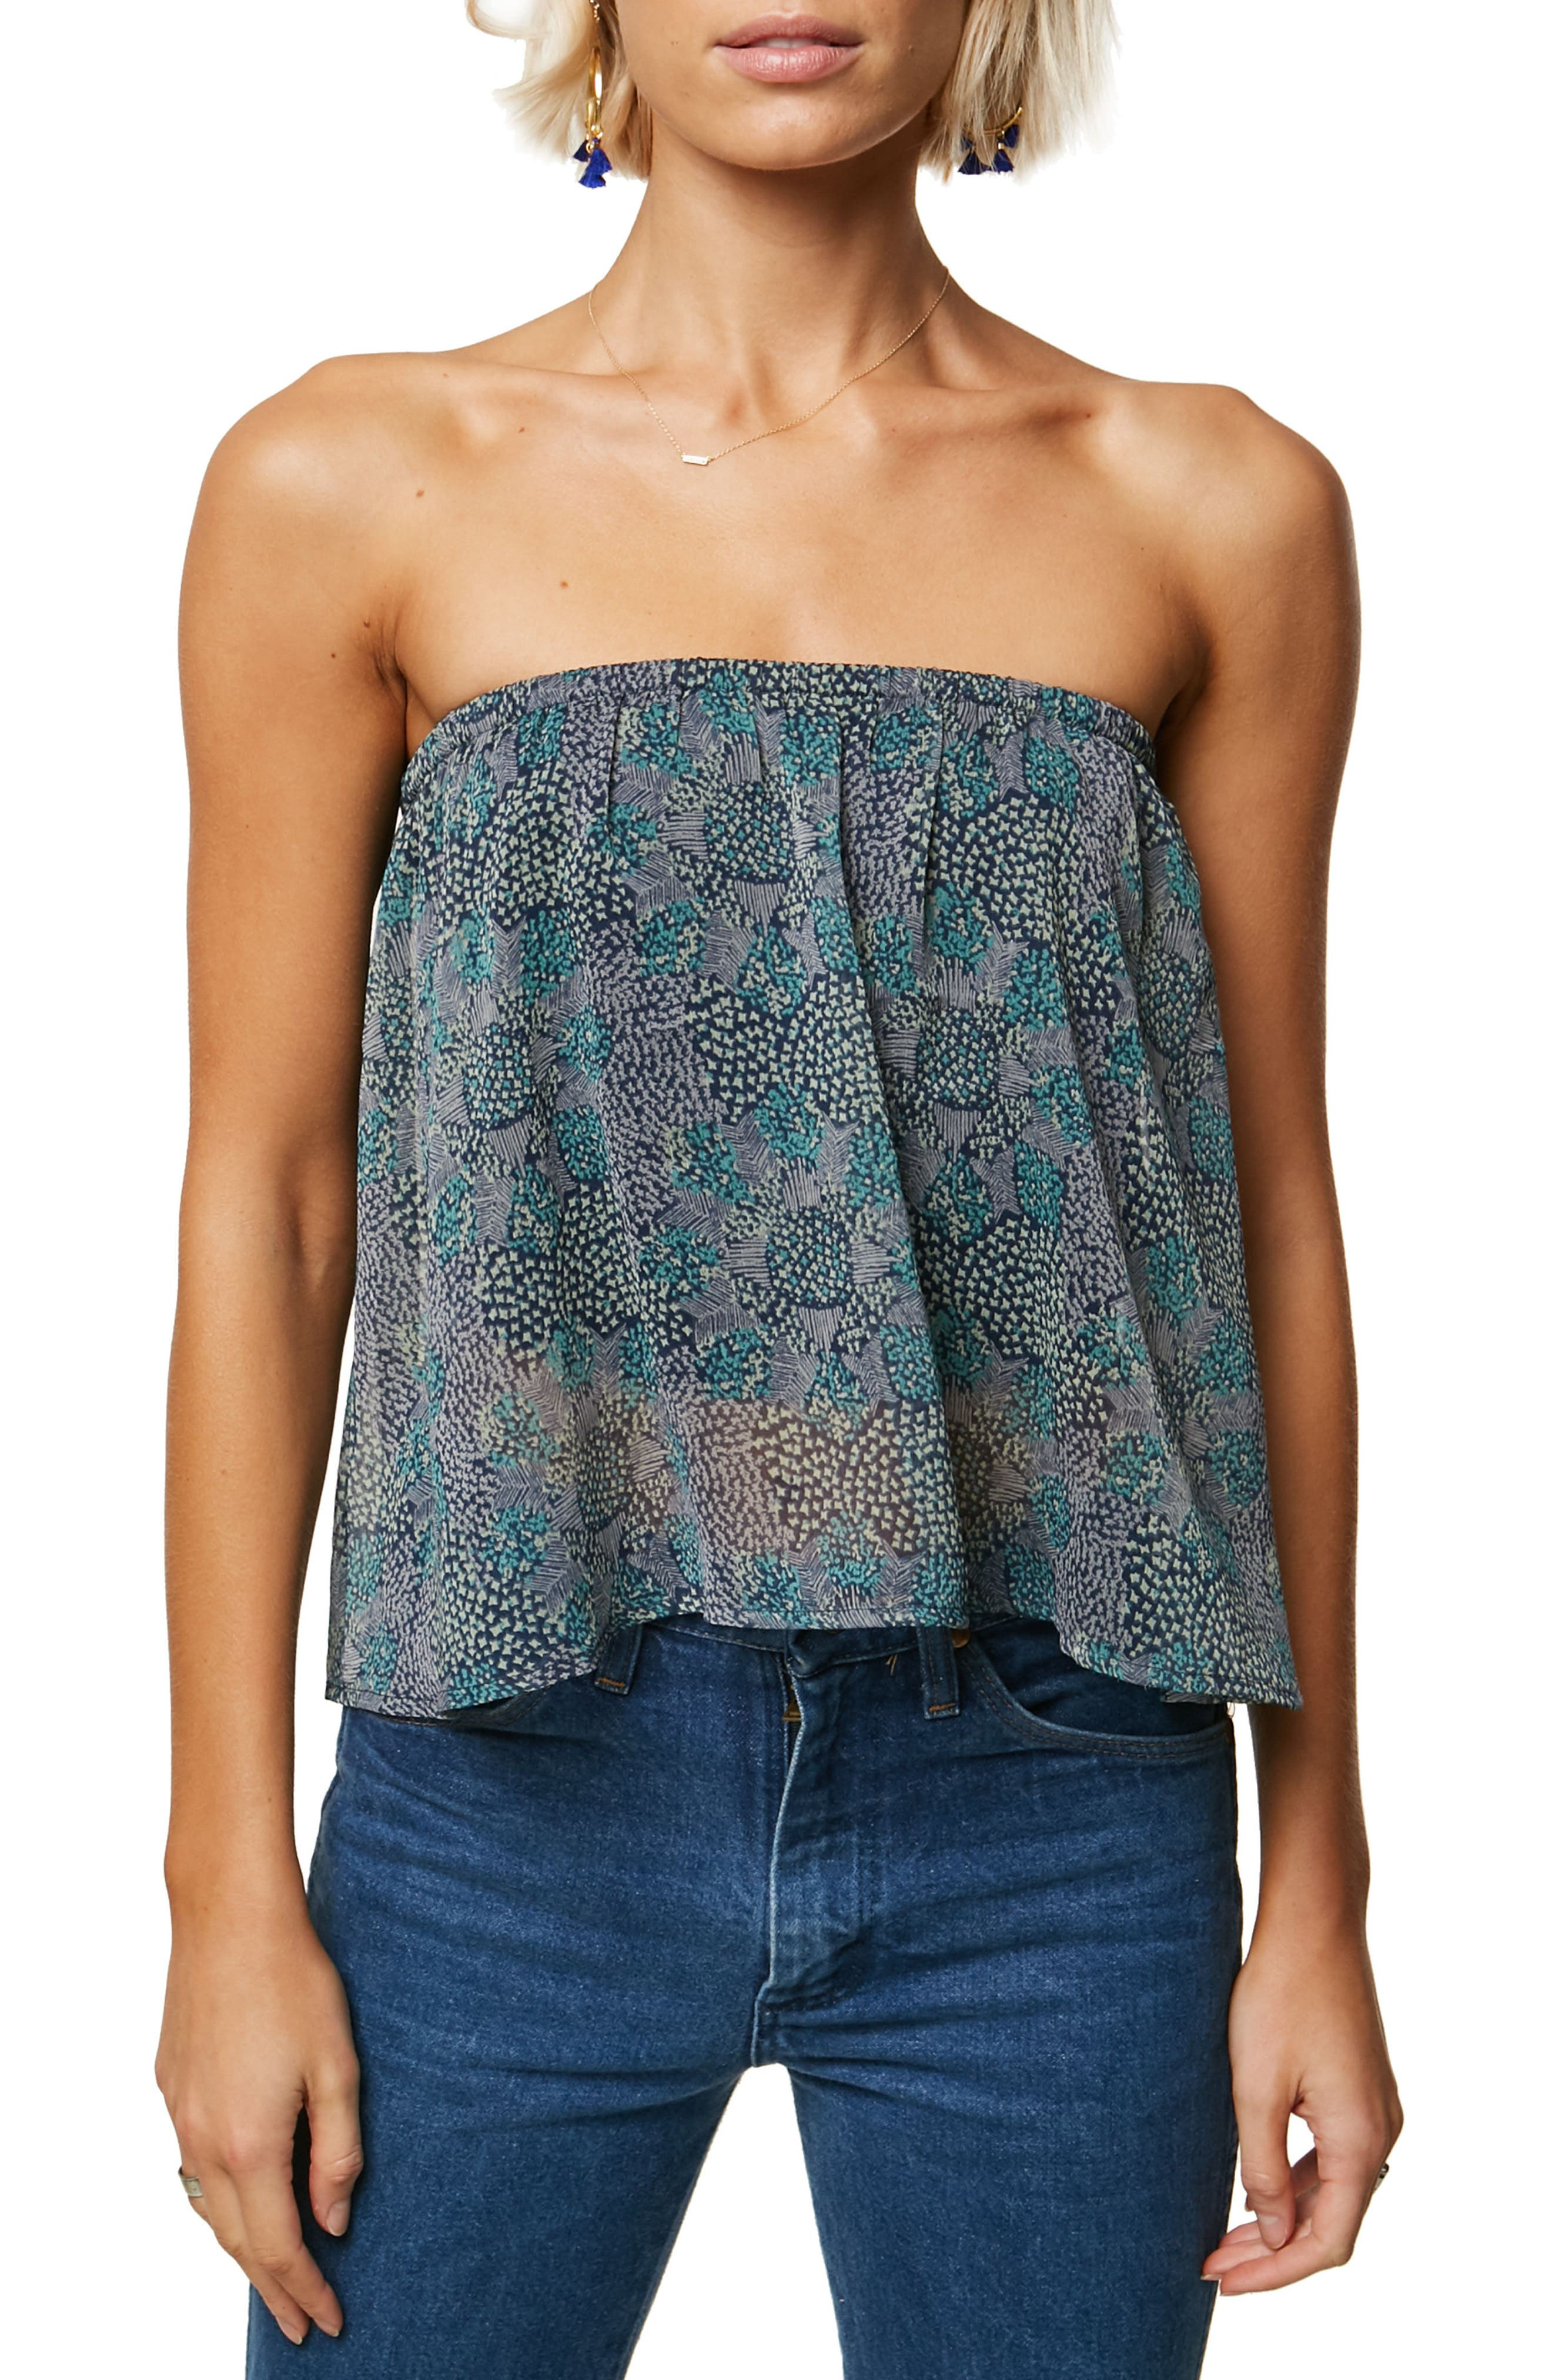 Heiress Strapless Top,                             Main thumbnail 1, color,                             400